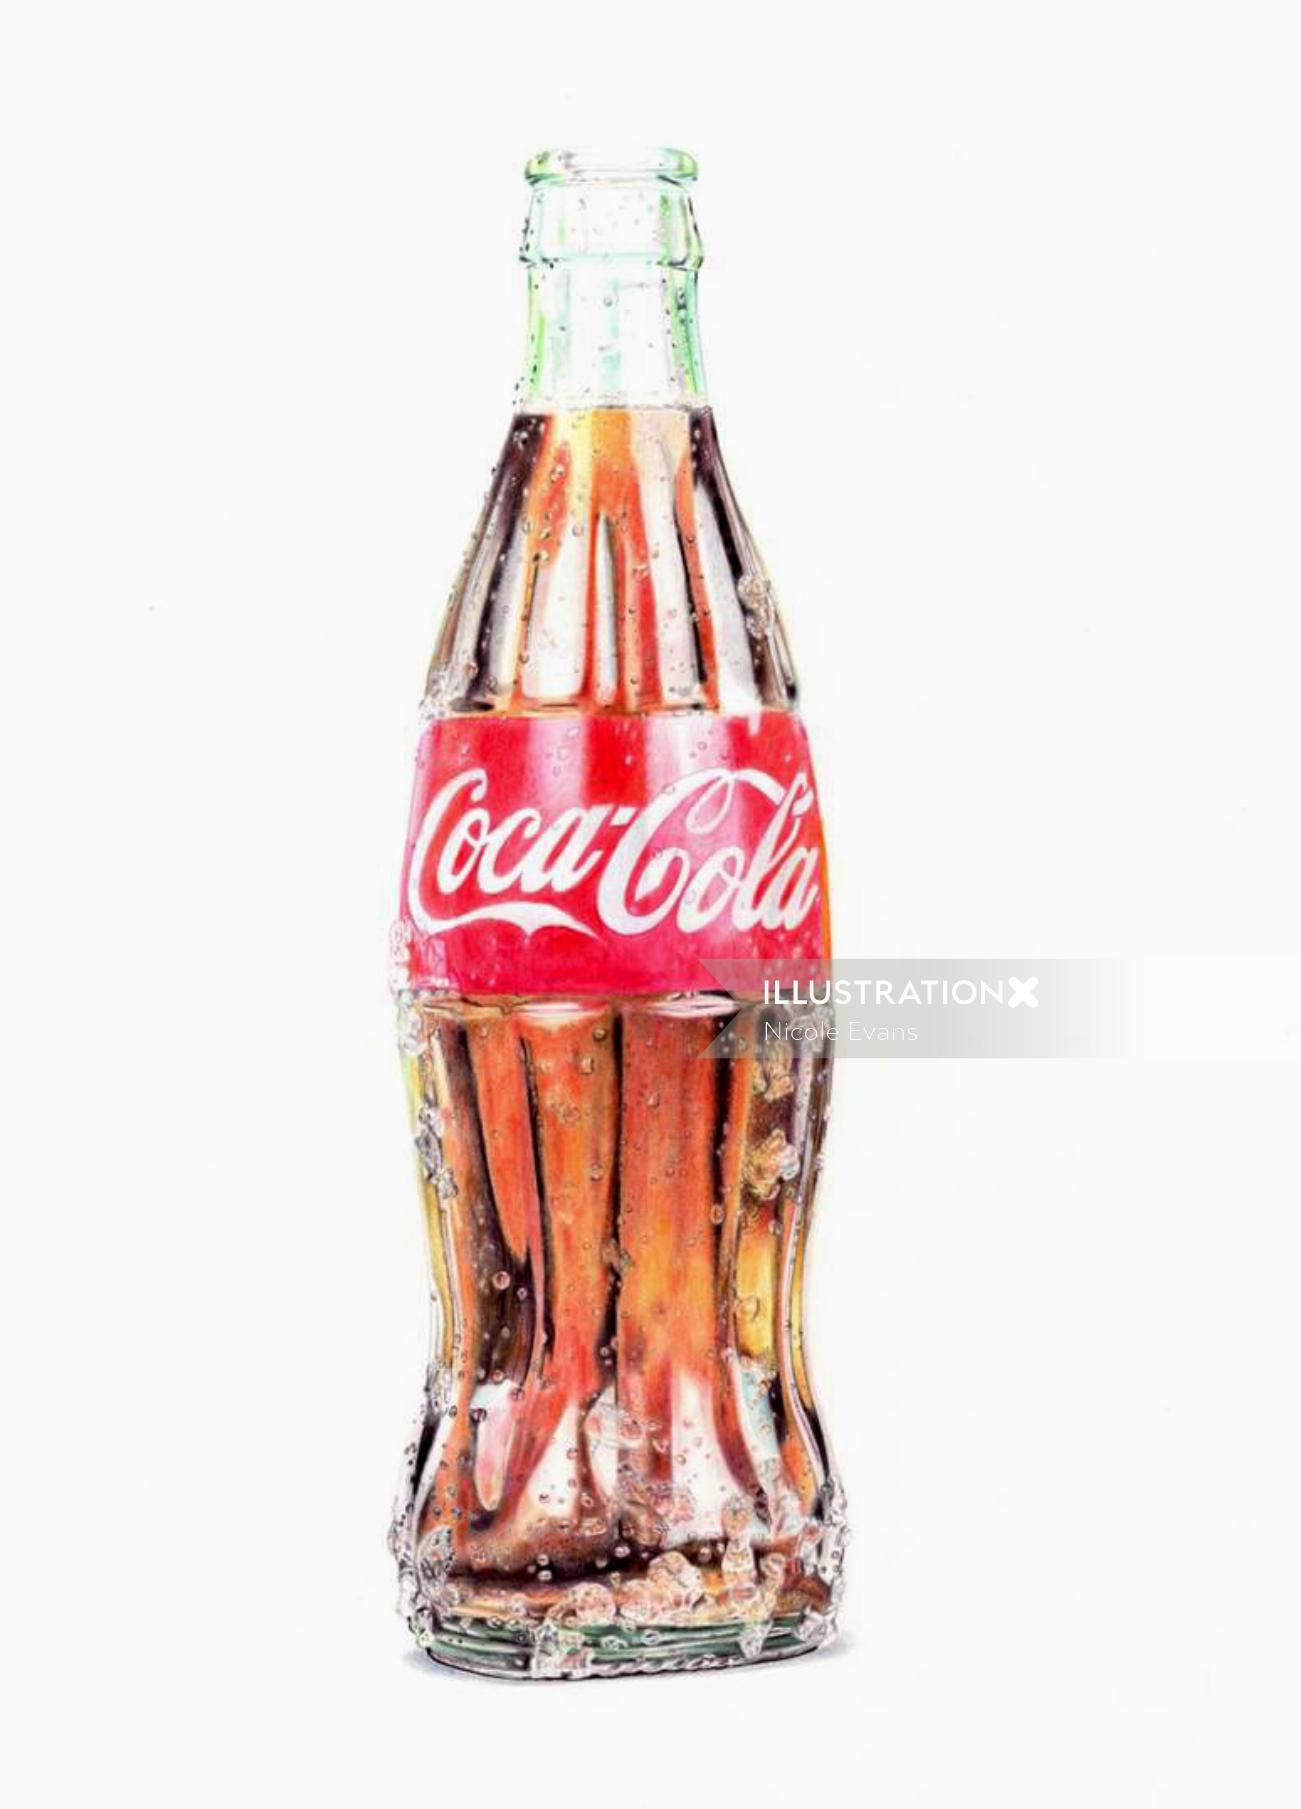 Pencil Drawing Of Coca Cola Bottle